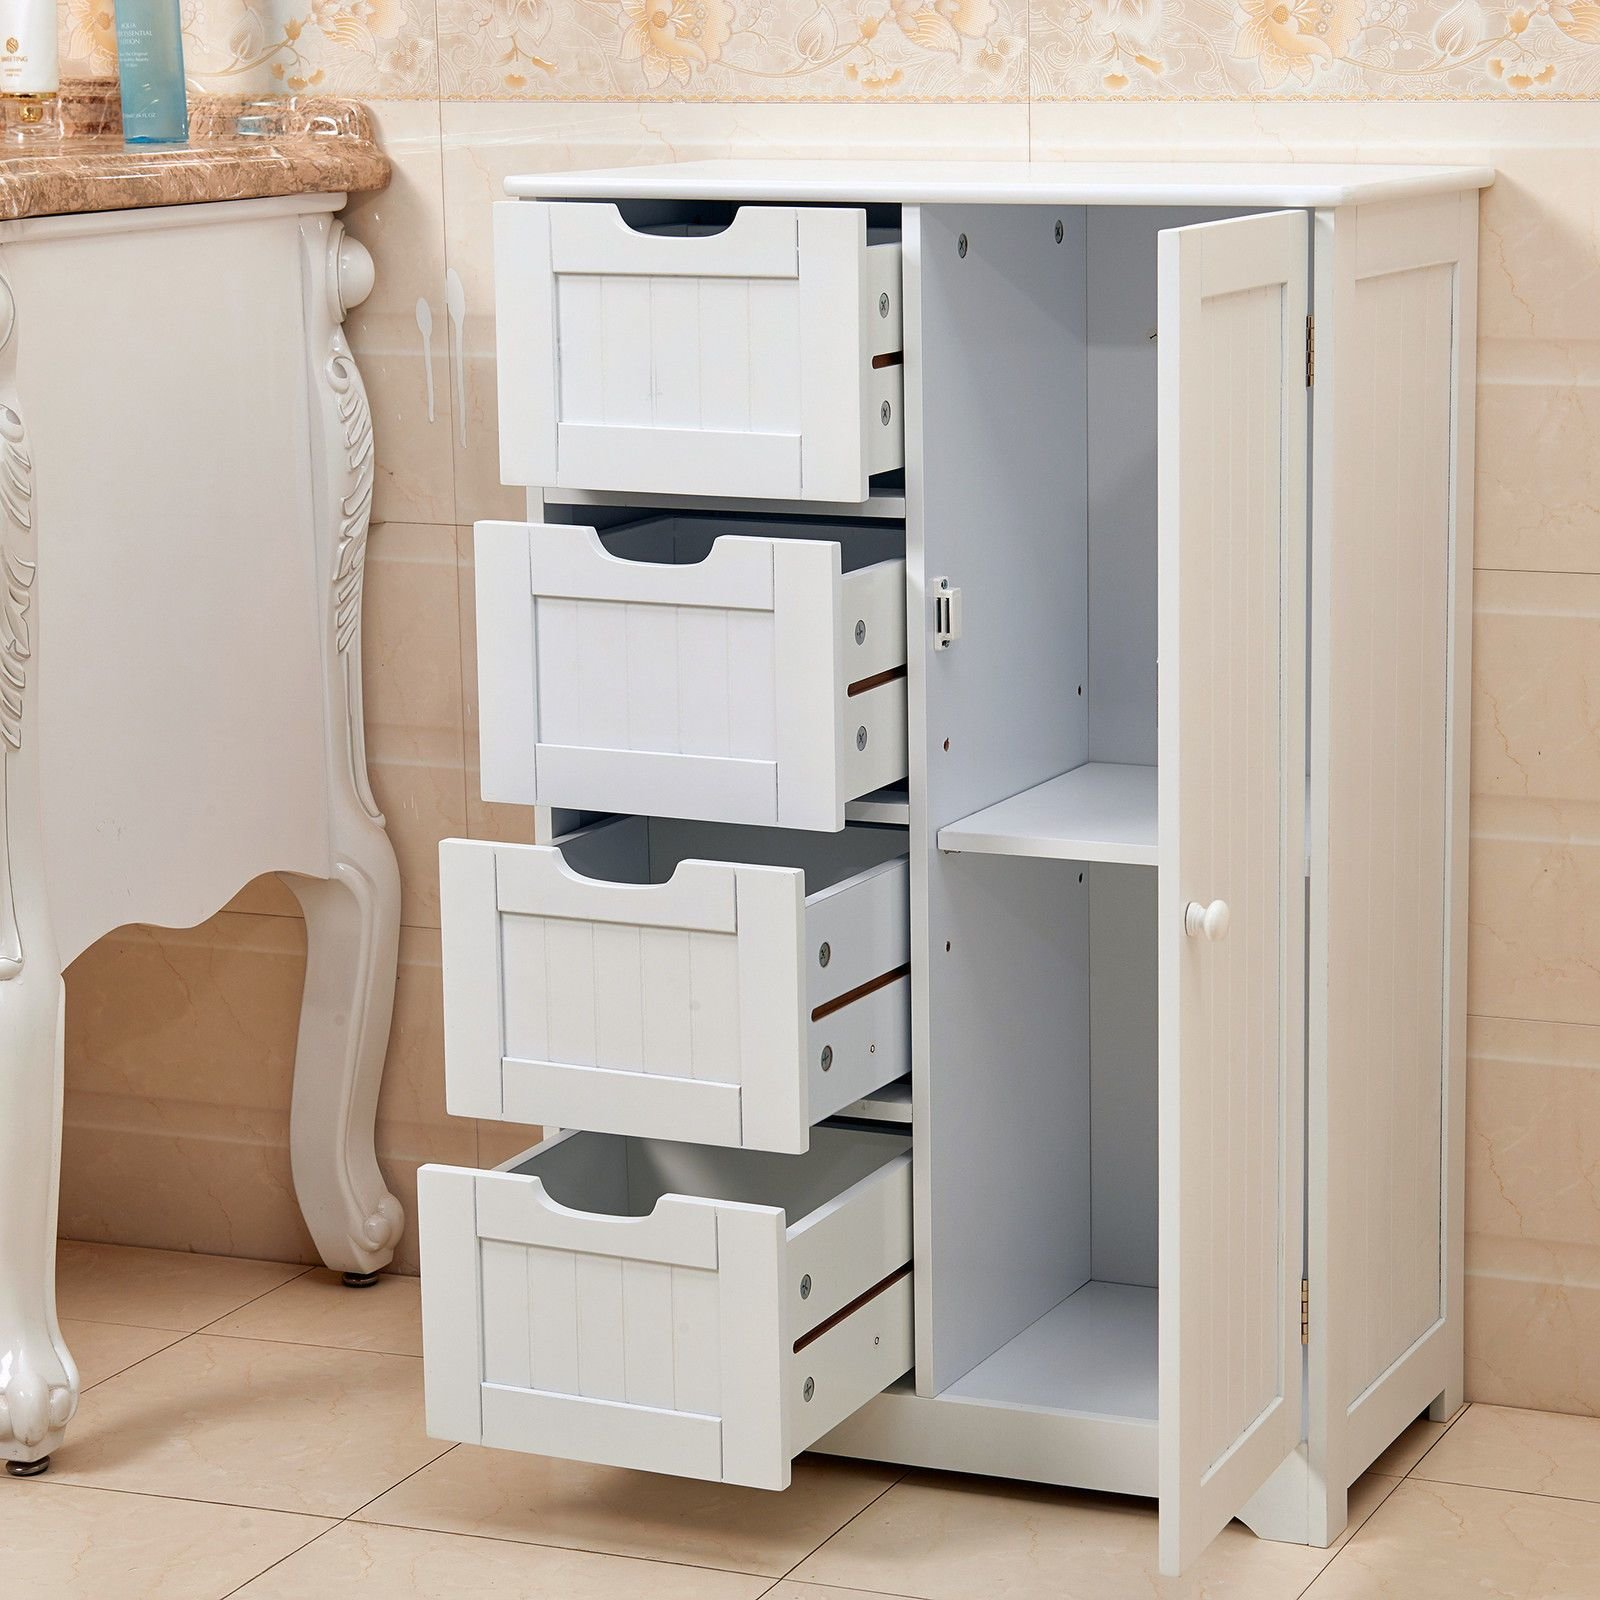 Best New White Wooden Cabinet With 4 Drawers Cupboard Storage With Pictures